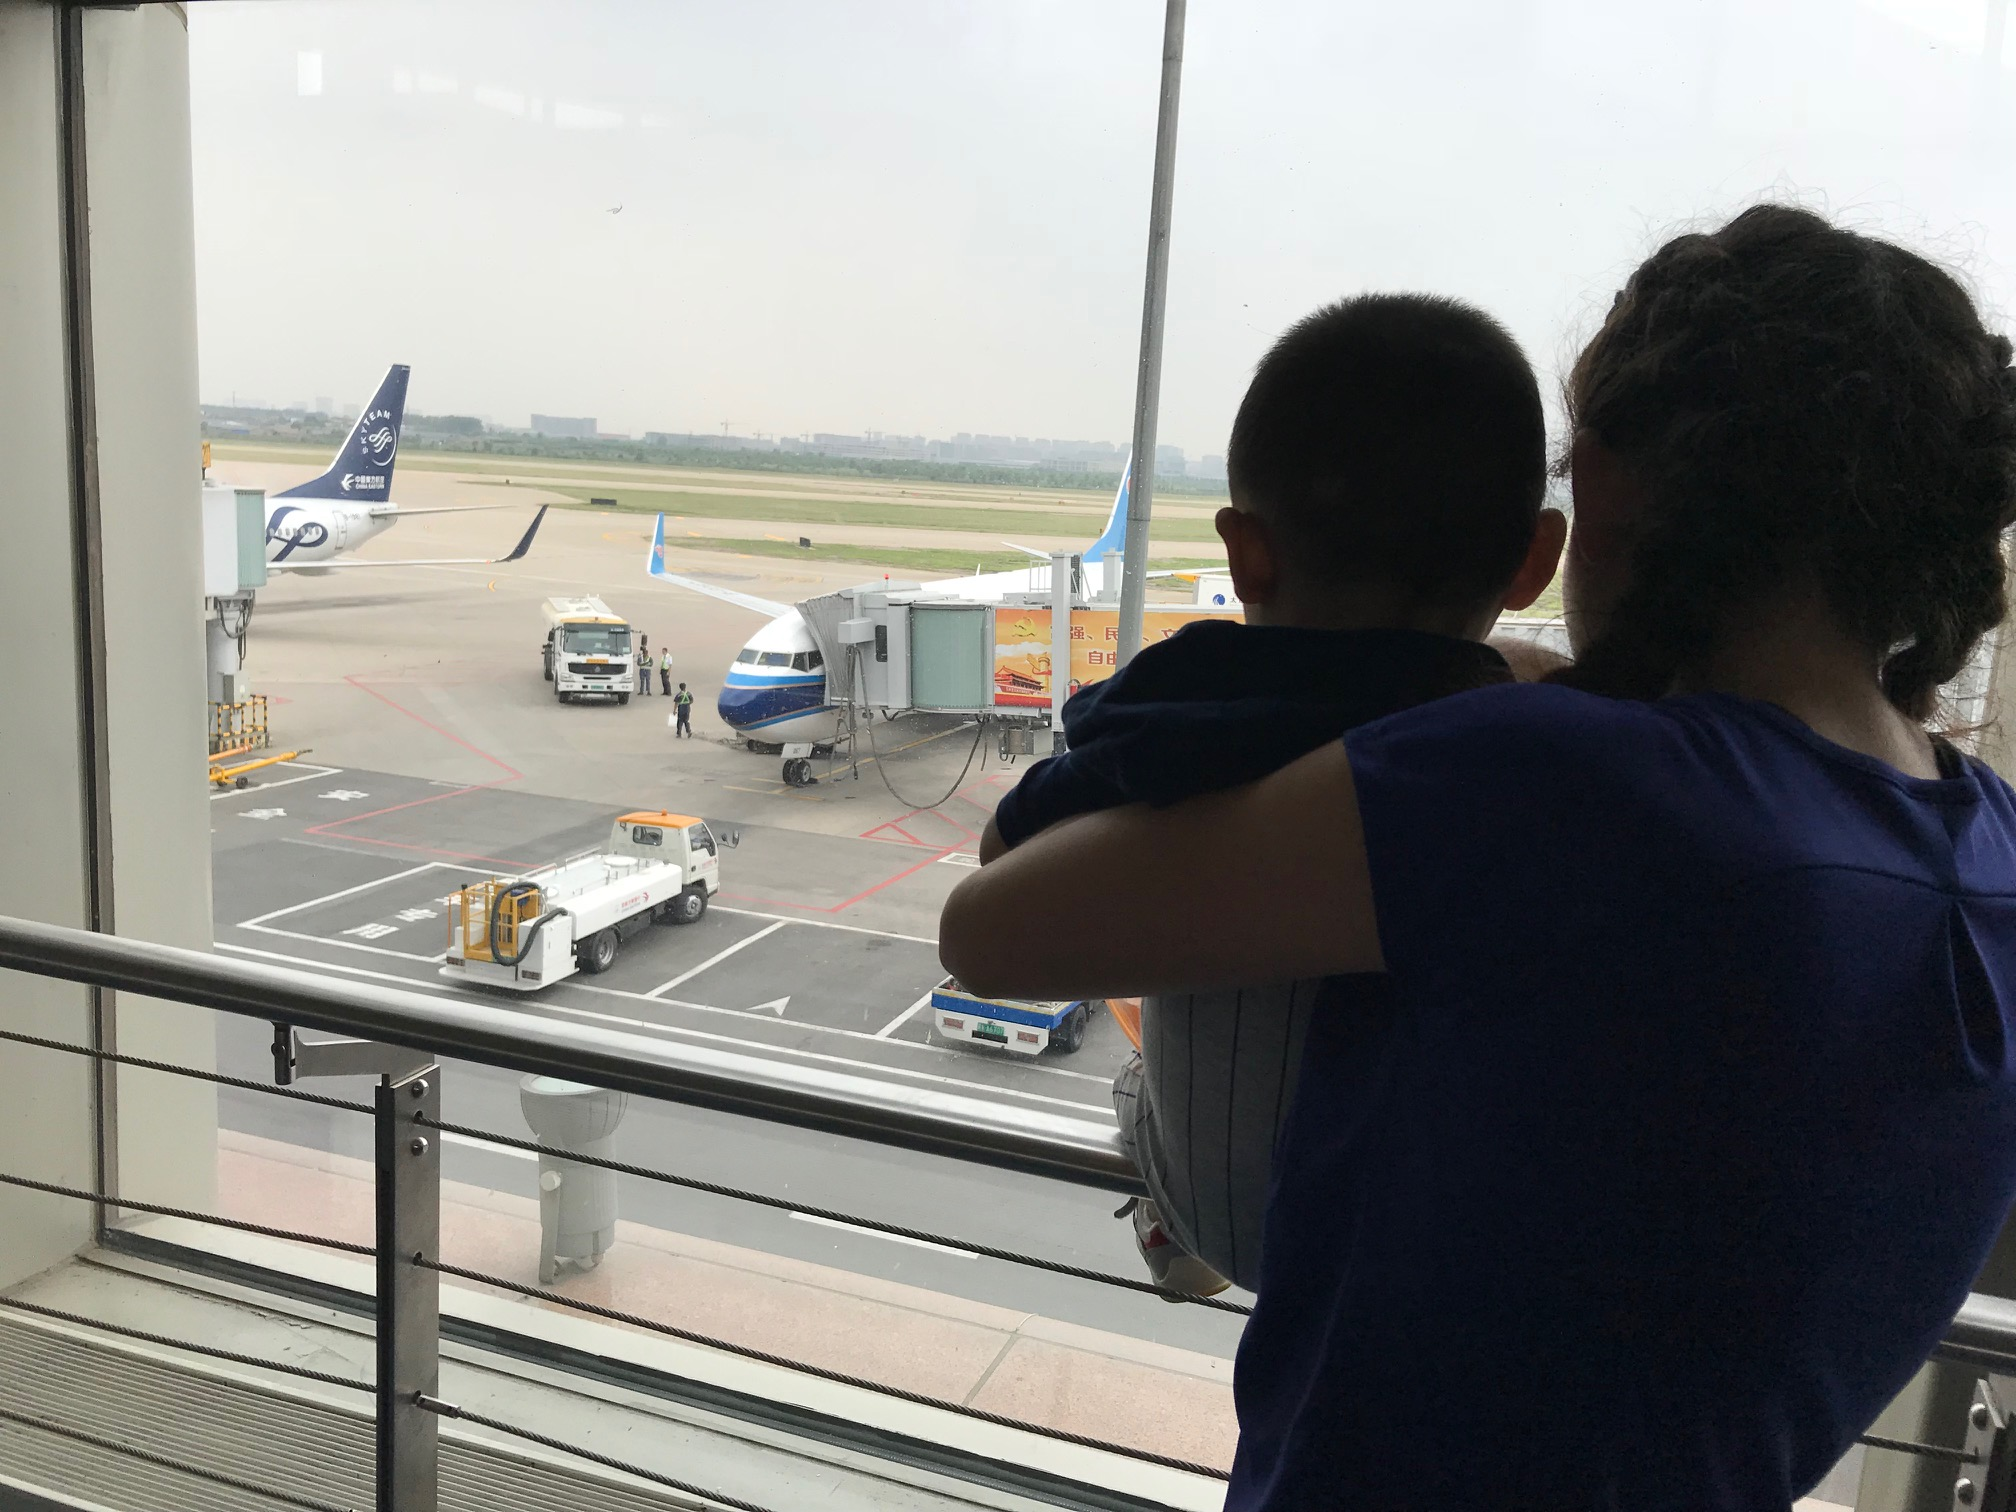 First time seeing airplanes... he had a lot to say about it but I didn't understand much of what he said.